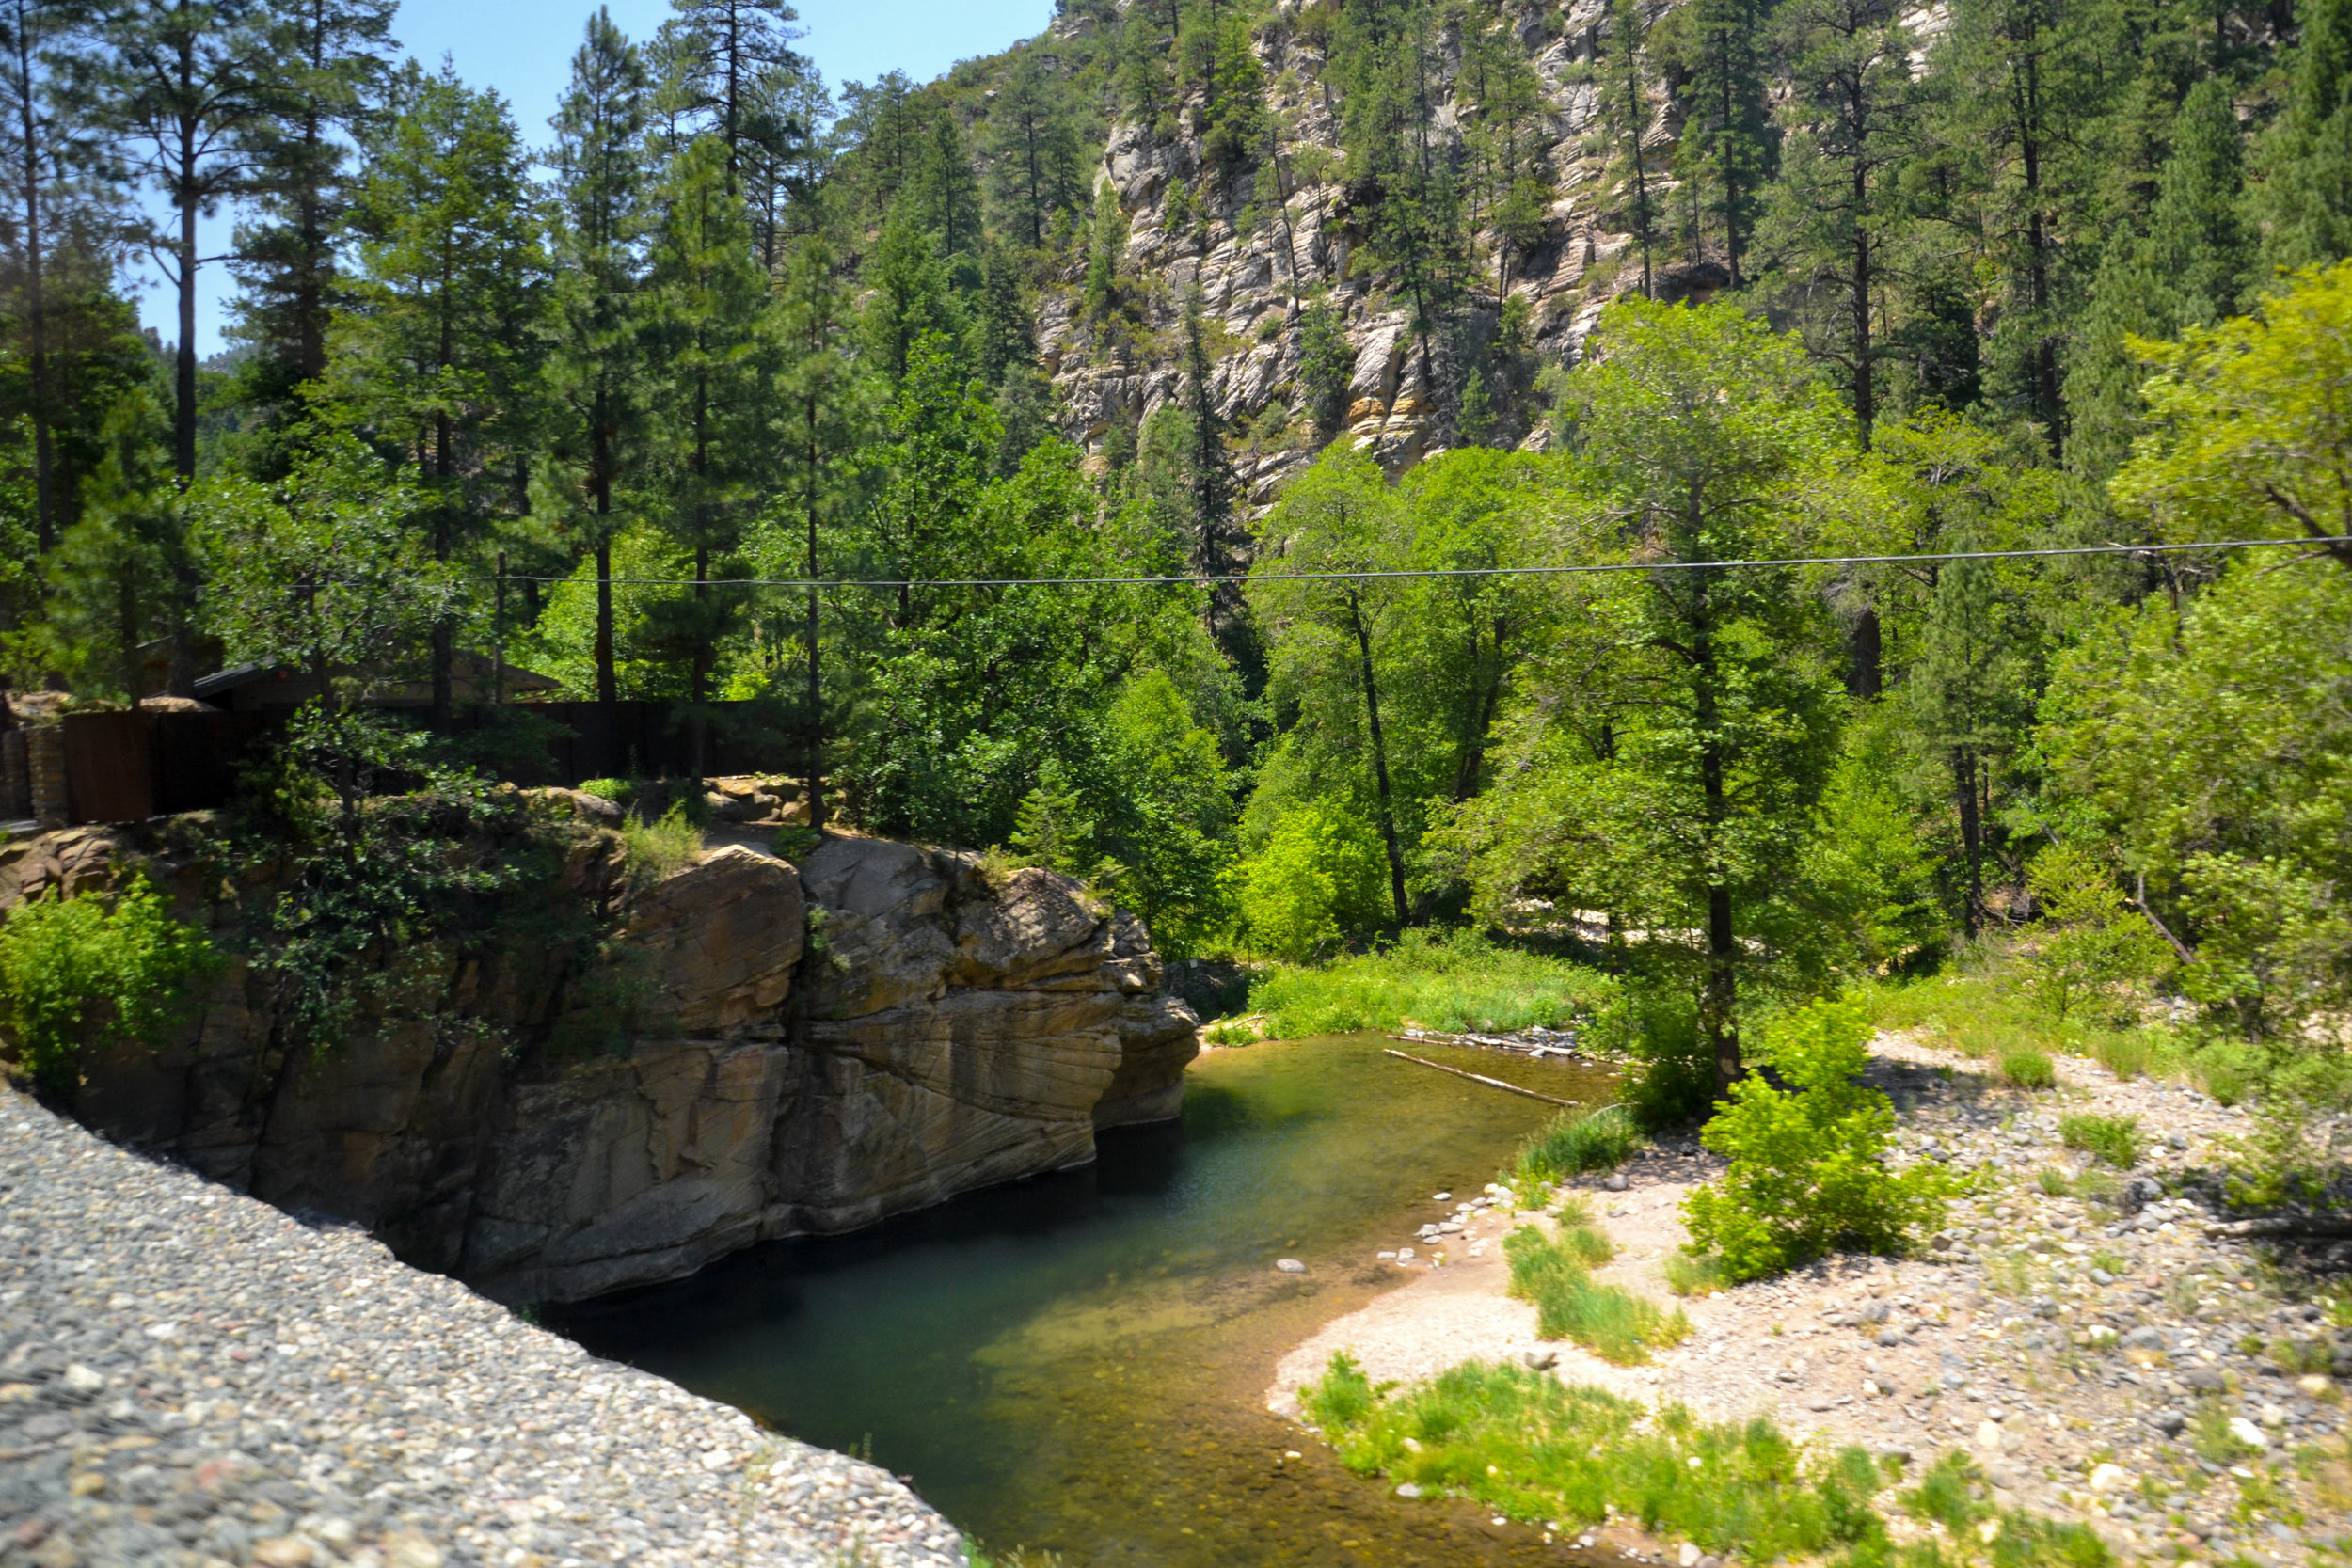 Oak Creek Canyon - On your way to Sedona, make sure you take the scenic route through the Oak Creek Canyon. The vistas offered are breathtaking - the swirling backcountry roads are worth it!